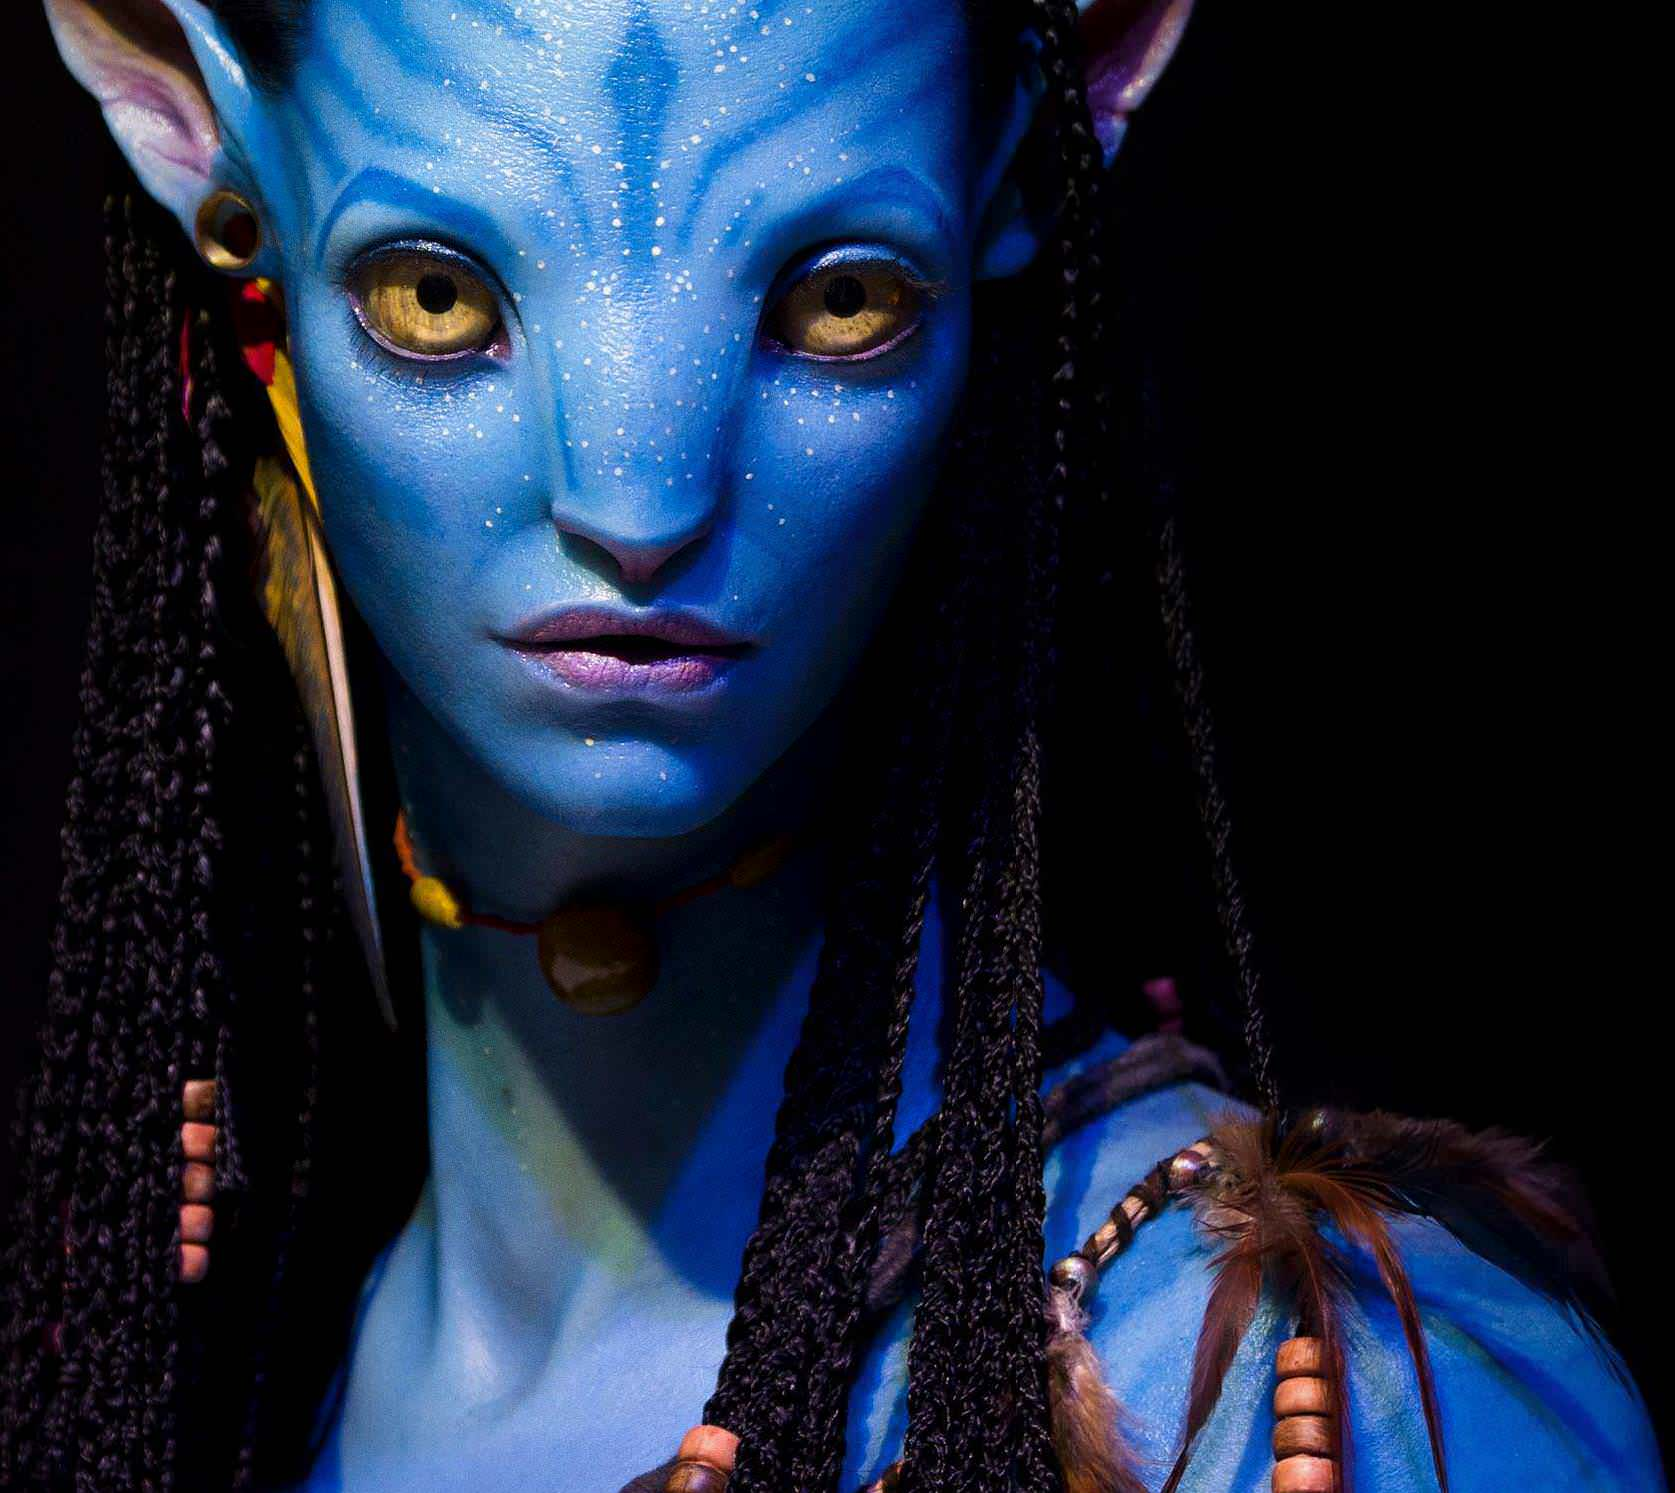 Avatar Film: 'Avatar' Sequels Now Scheduled To Start In December 2020